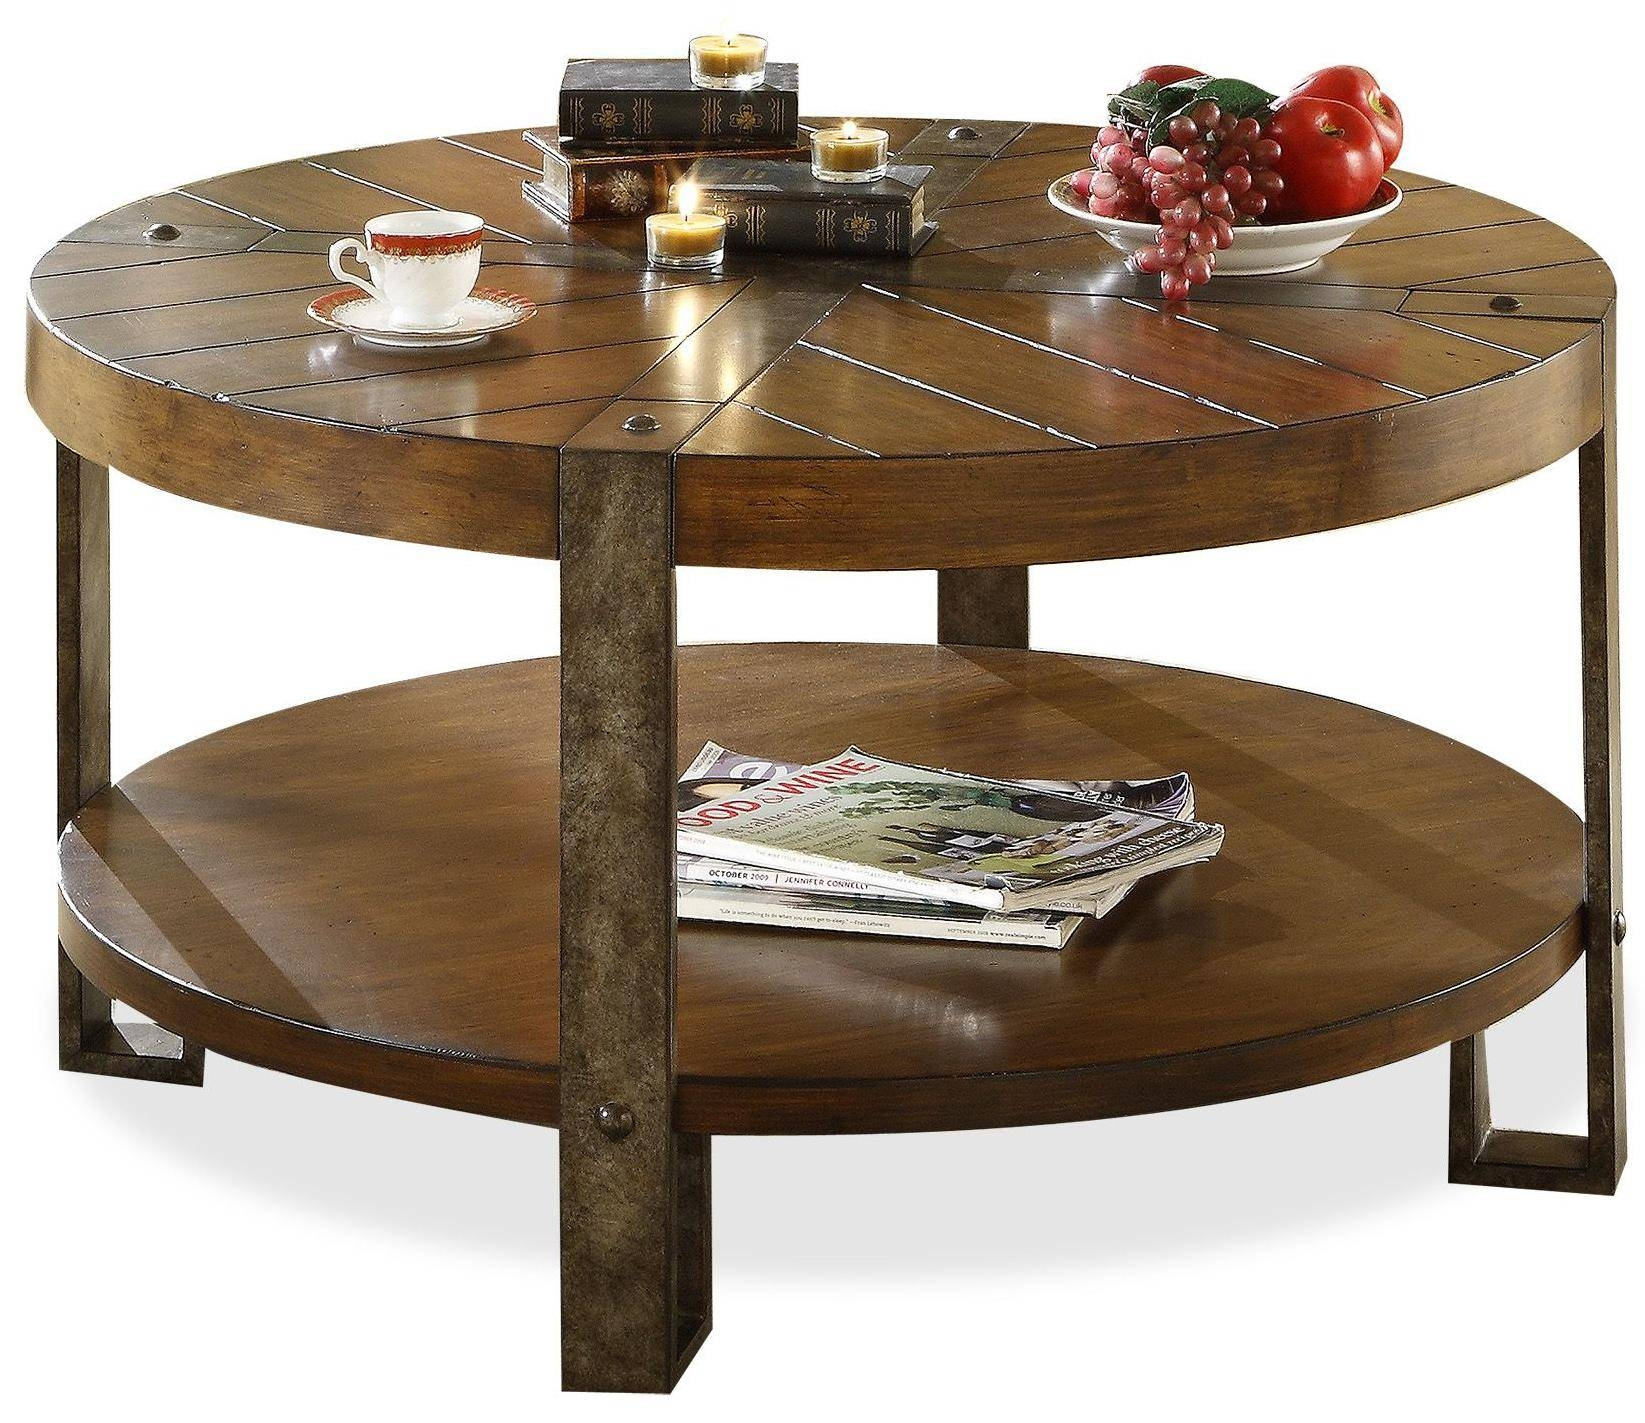 Riverside Furniture Sierra Round Wooden Coffee Table With Metal intended for Round Metal Coffee Tables (Image 10 of 15)